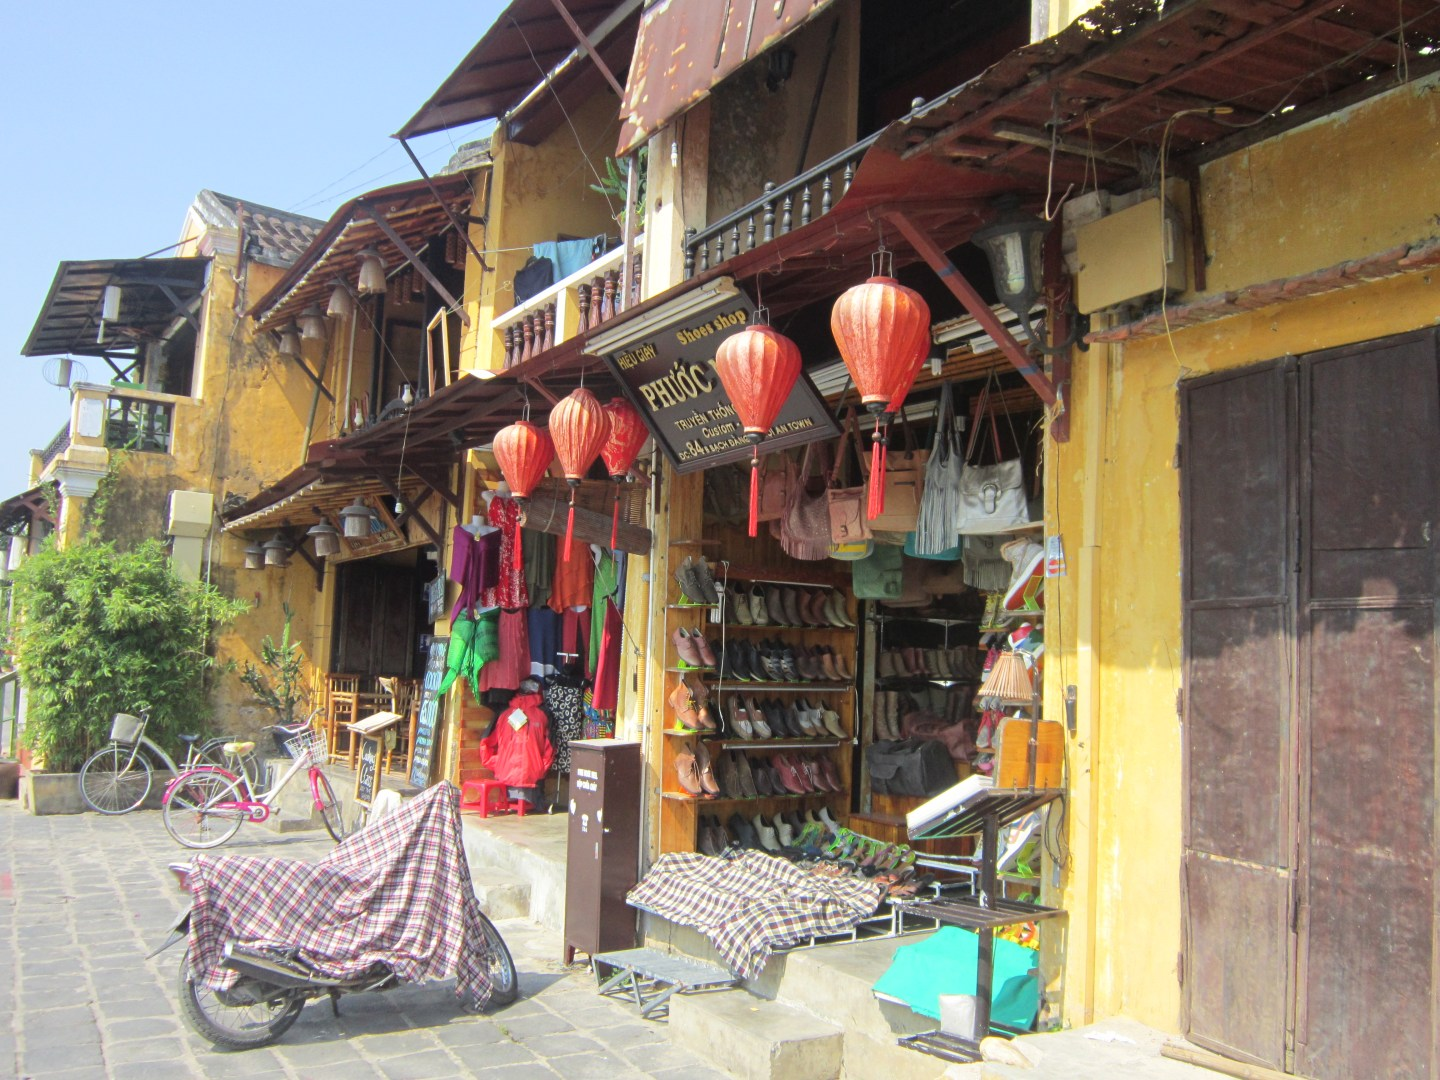 Photos of Hoi An – the beautiful old town